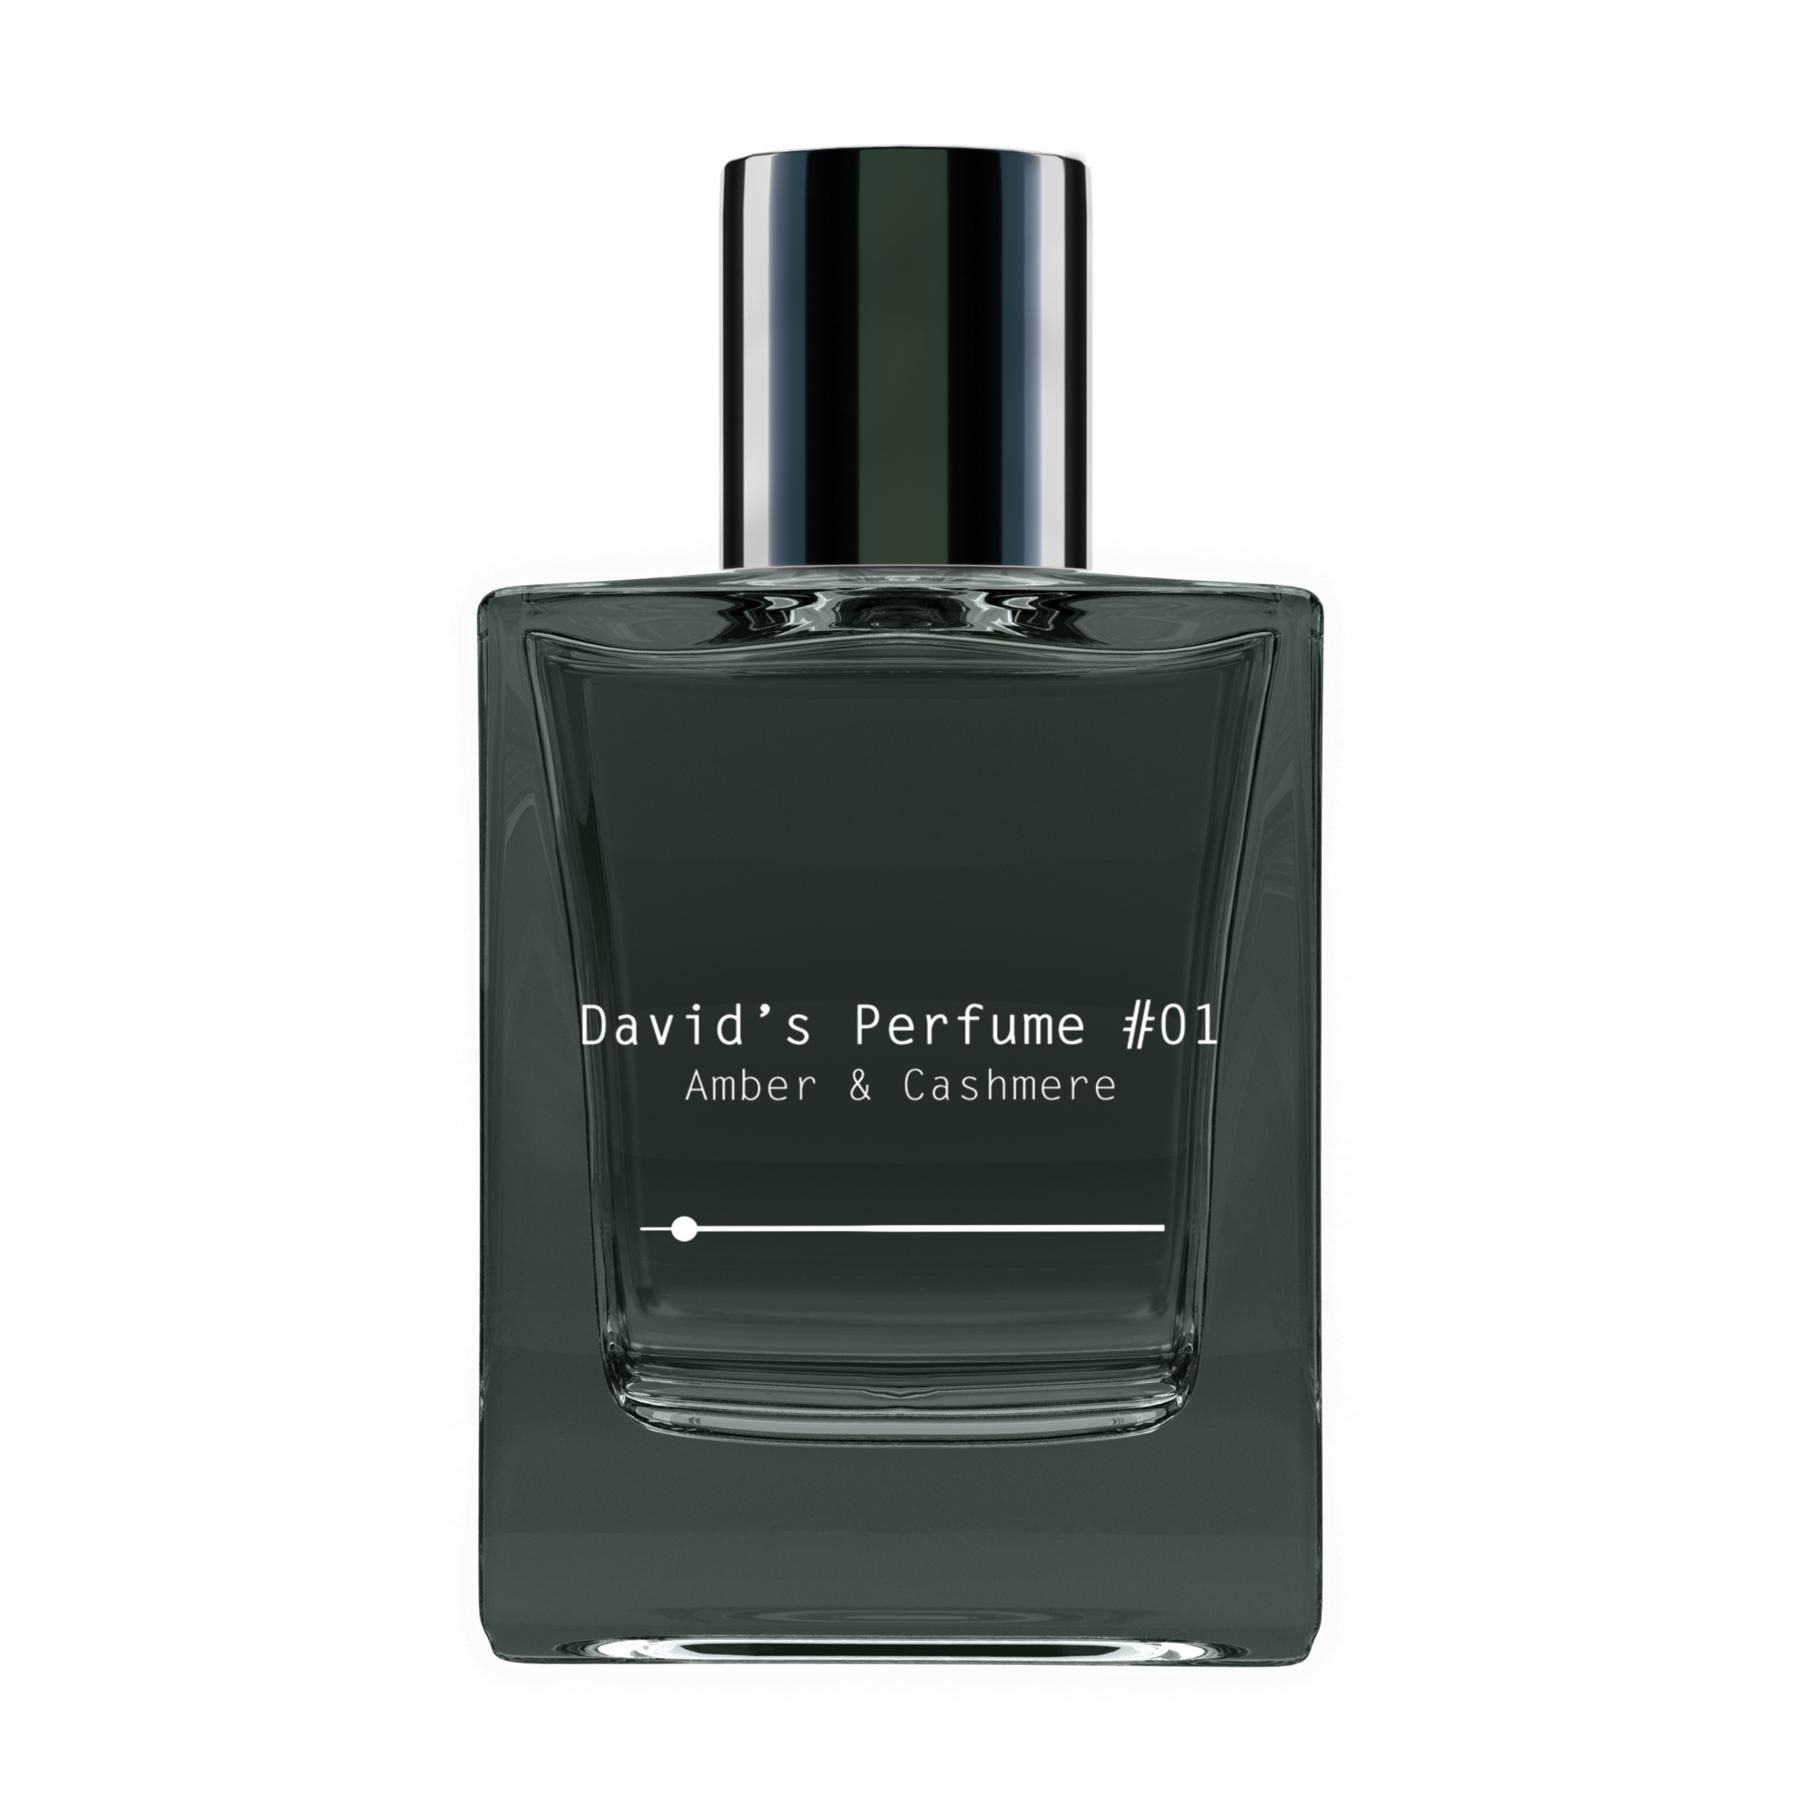 David's Perfume by David Dobrik in Amber and Cashmere